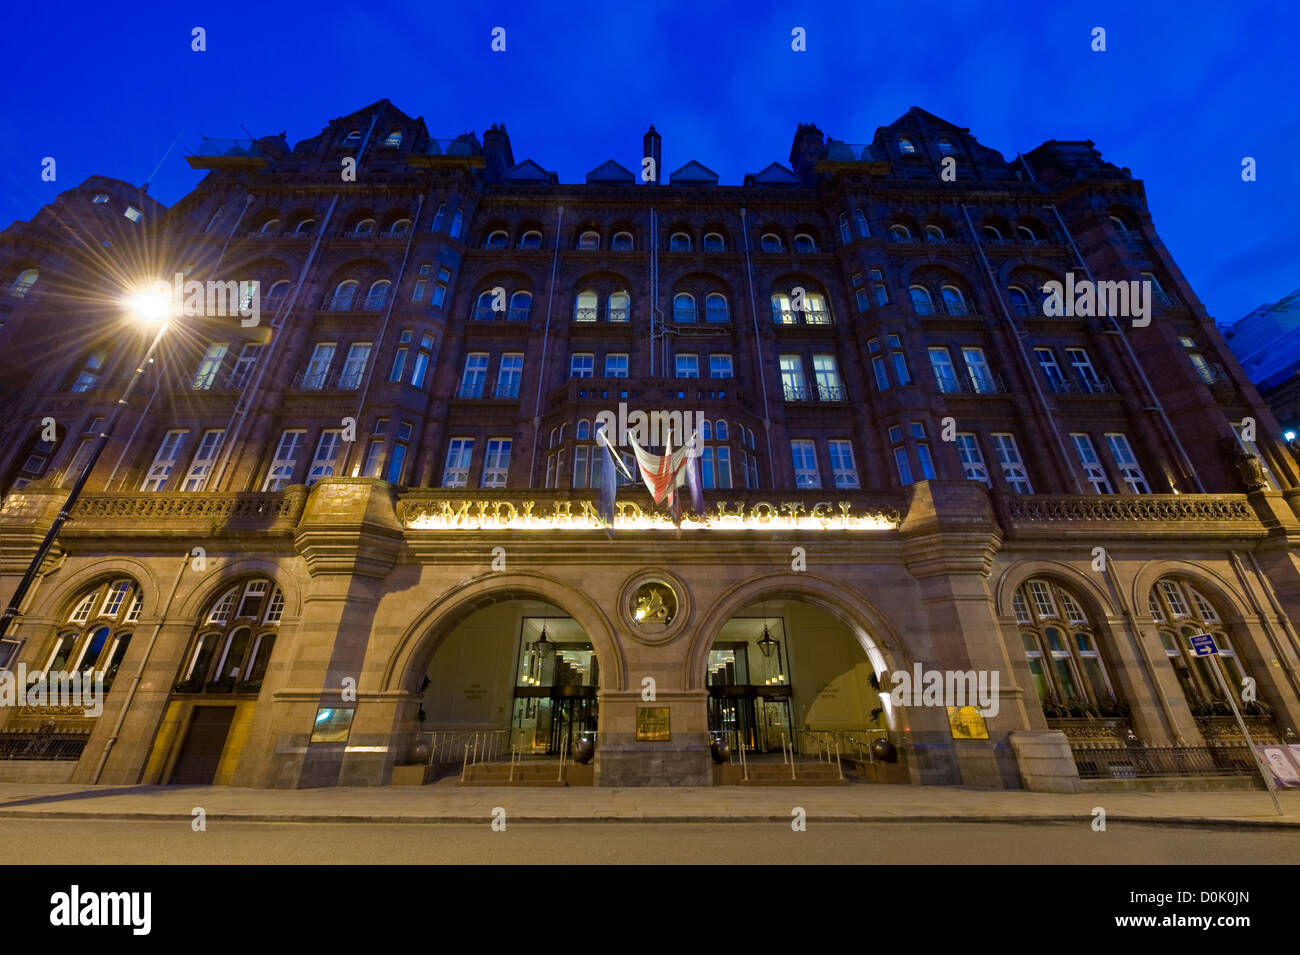 The Midland Hotel in St Peter's Square in Manchester. - Stock Image